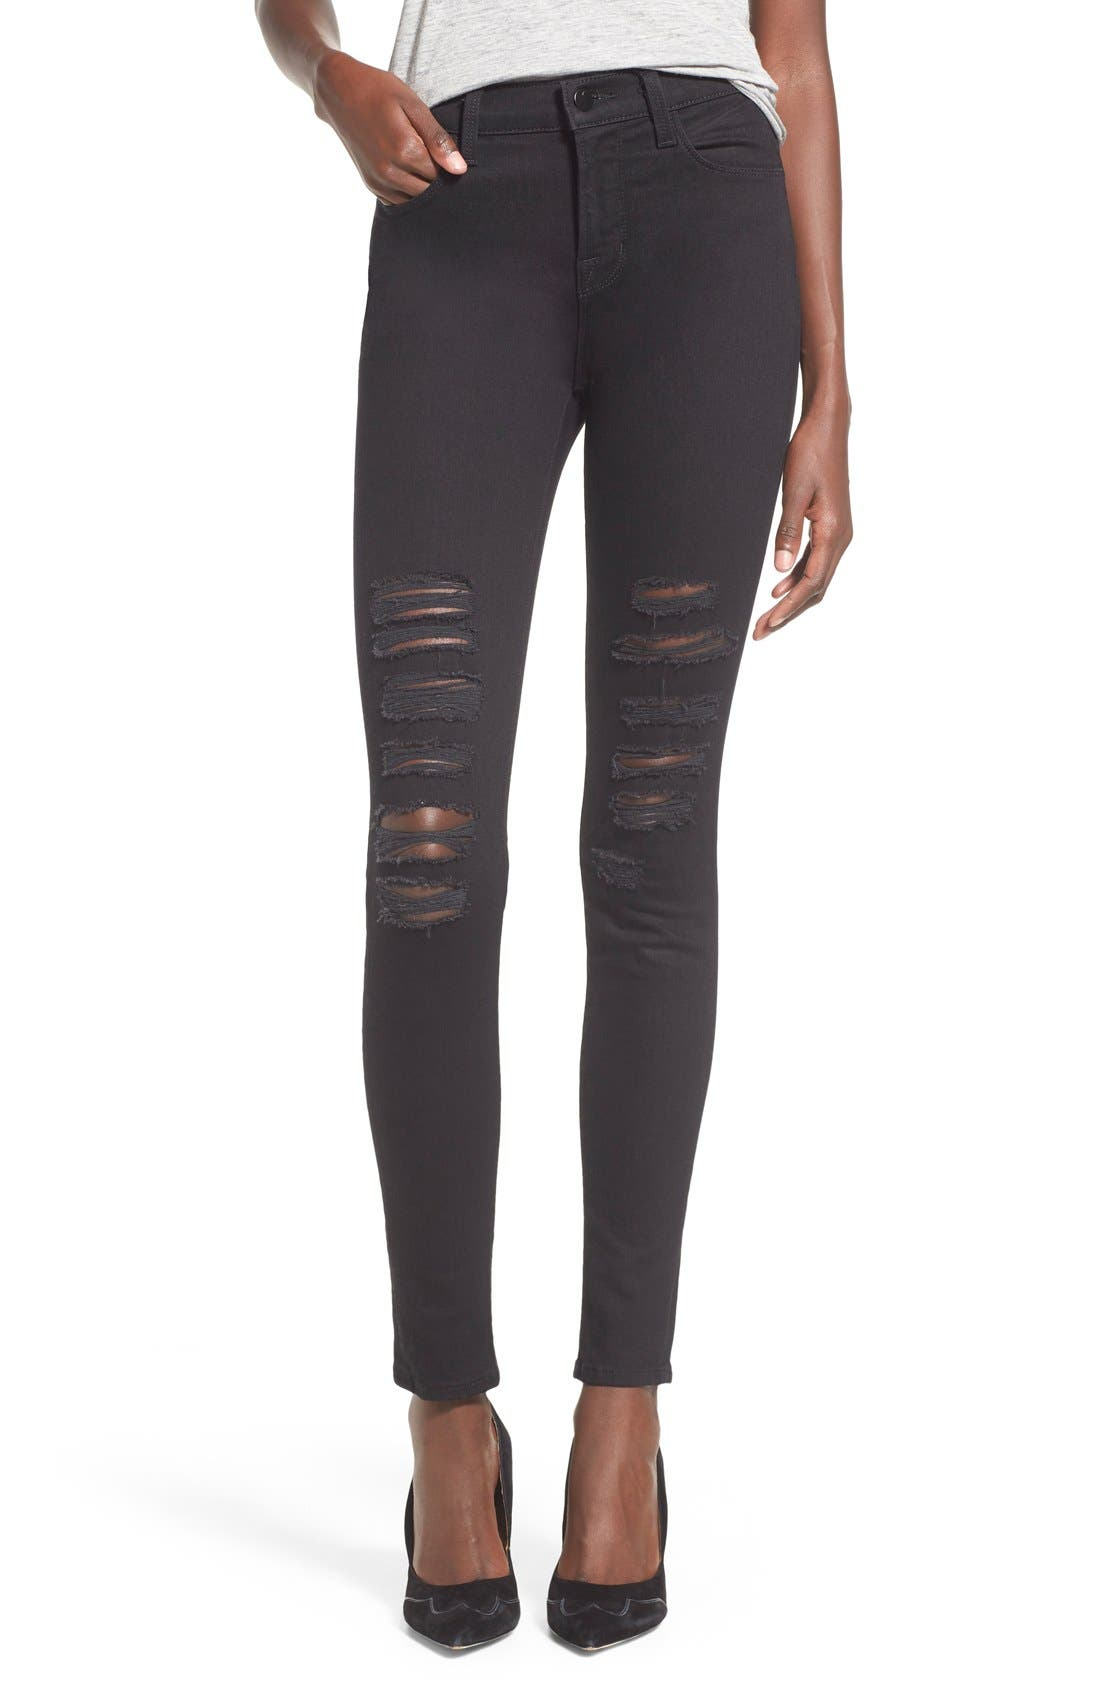 Alternate Image 1 Selected - J Brand Maria Ripped High Waist Skinny Jeans (Blackheart)